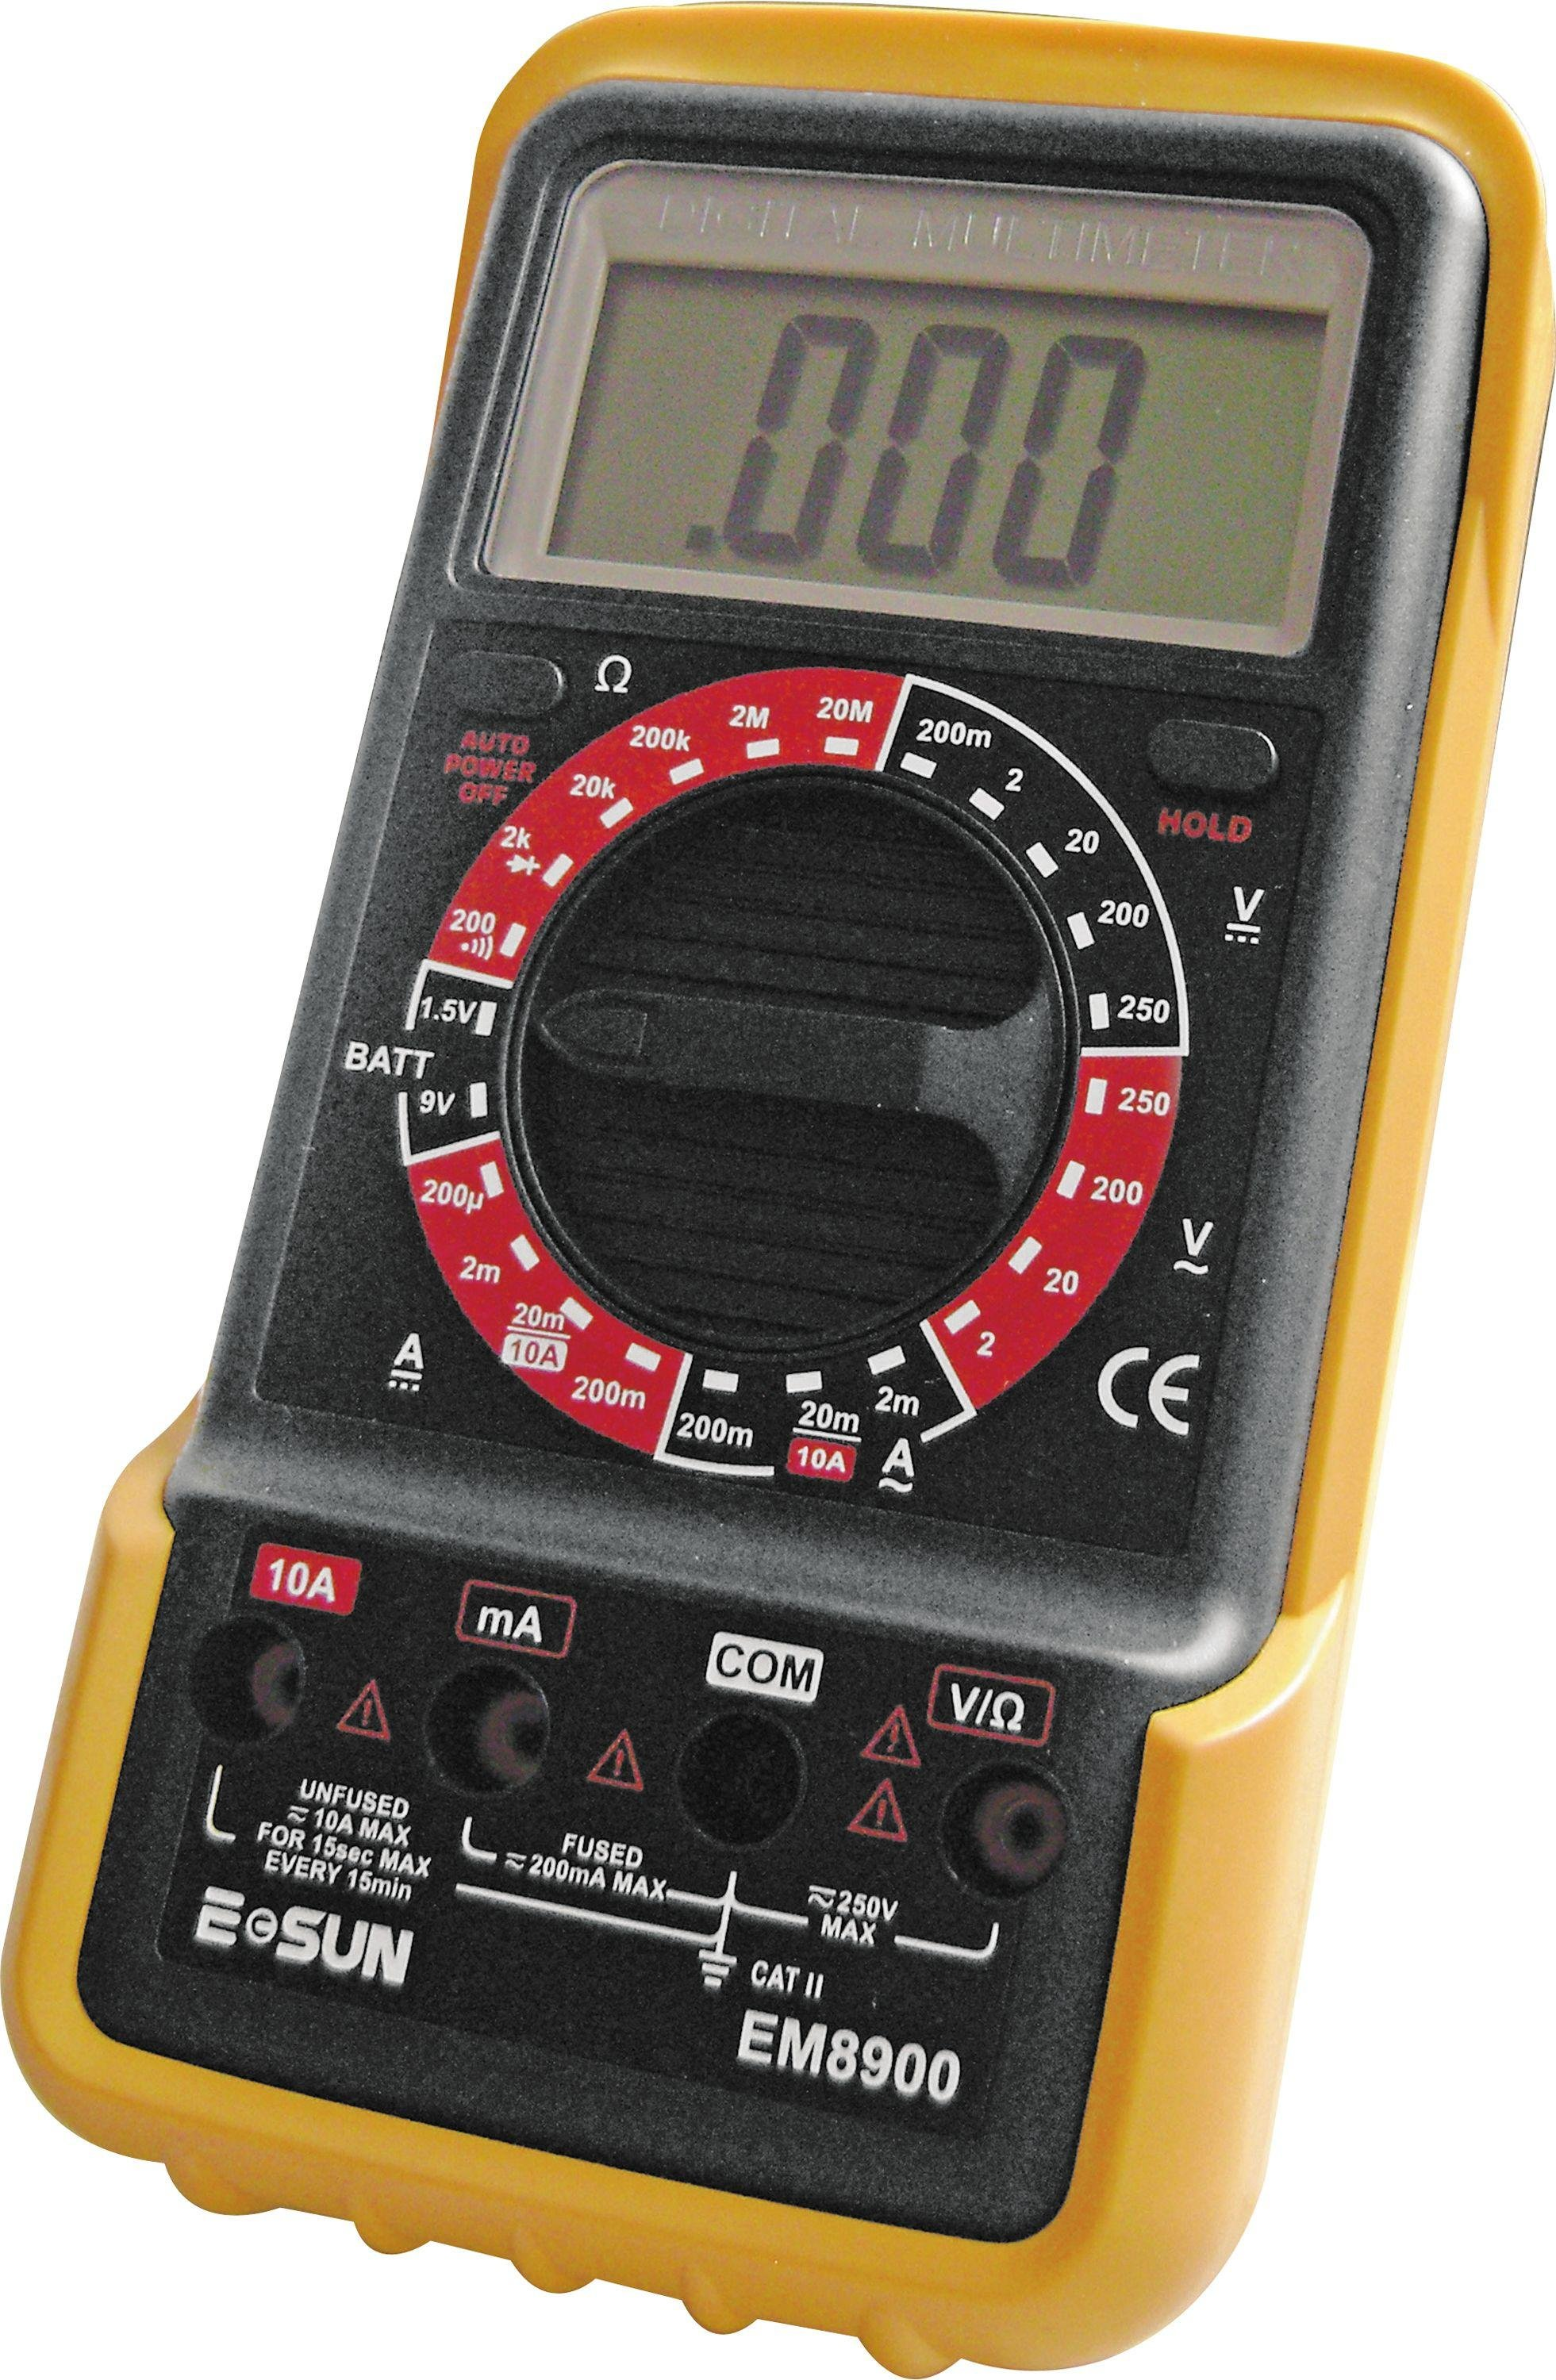 28 Position Digital Multi-Meter.